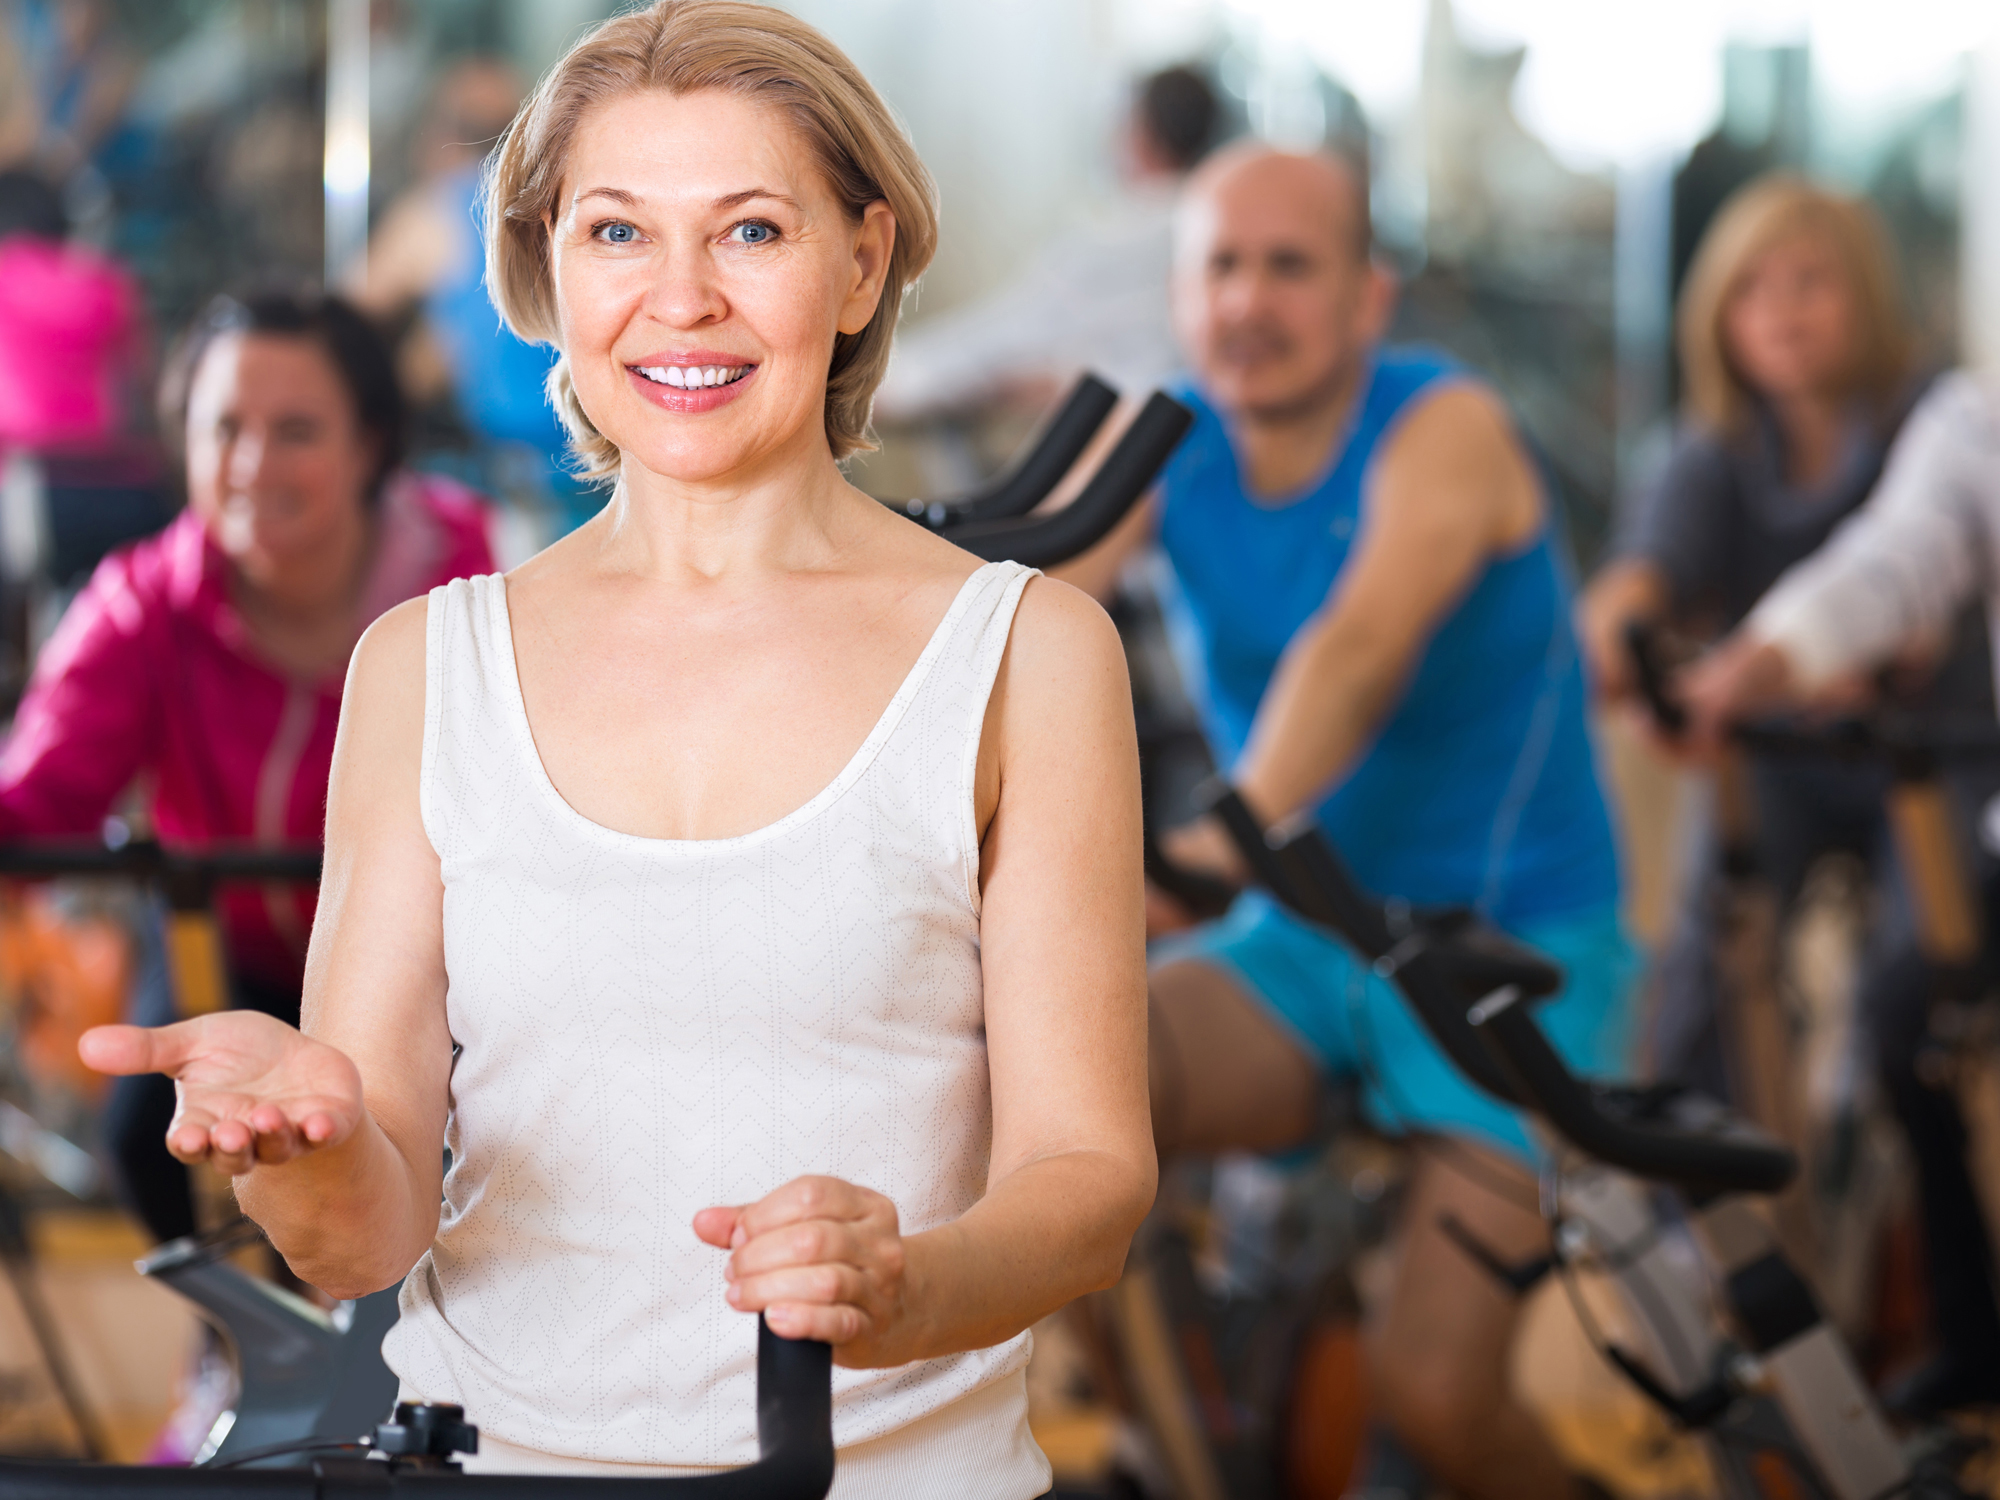 So you want to lose that menopause weight?